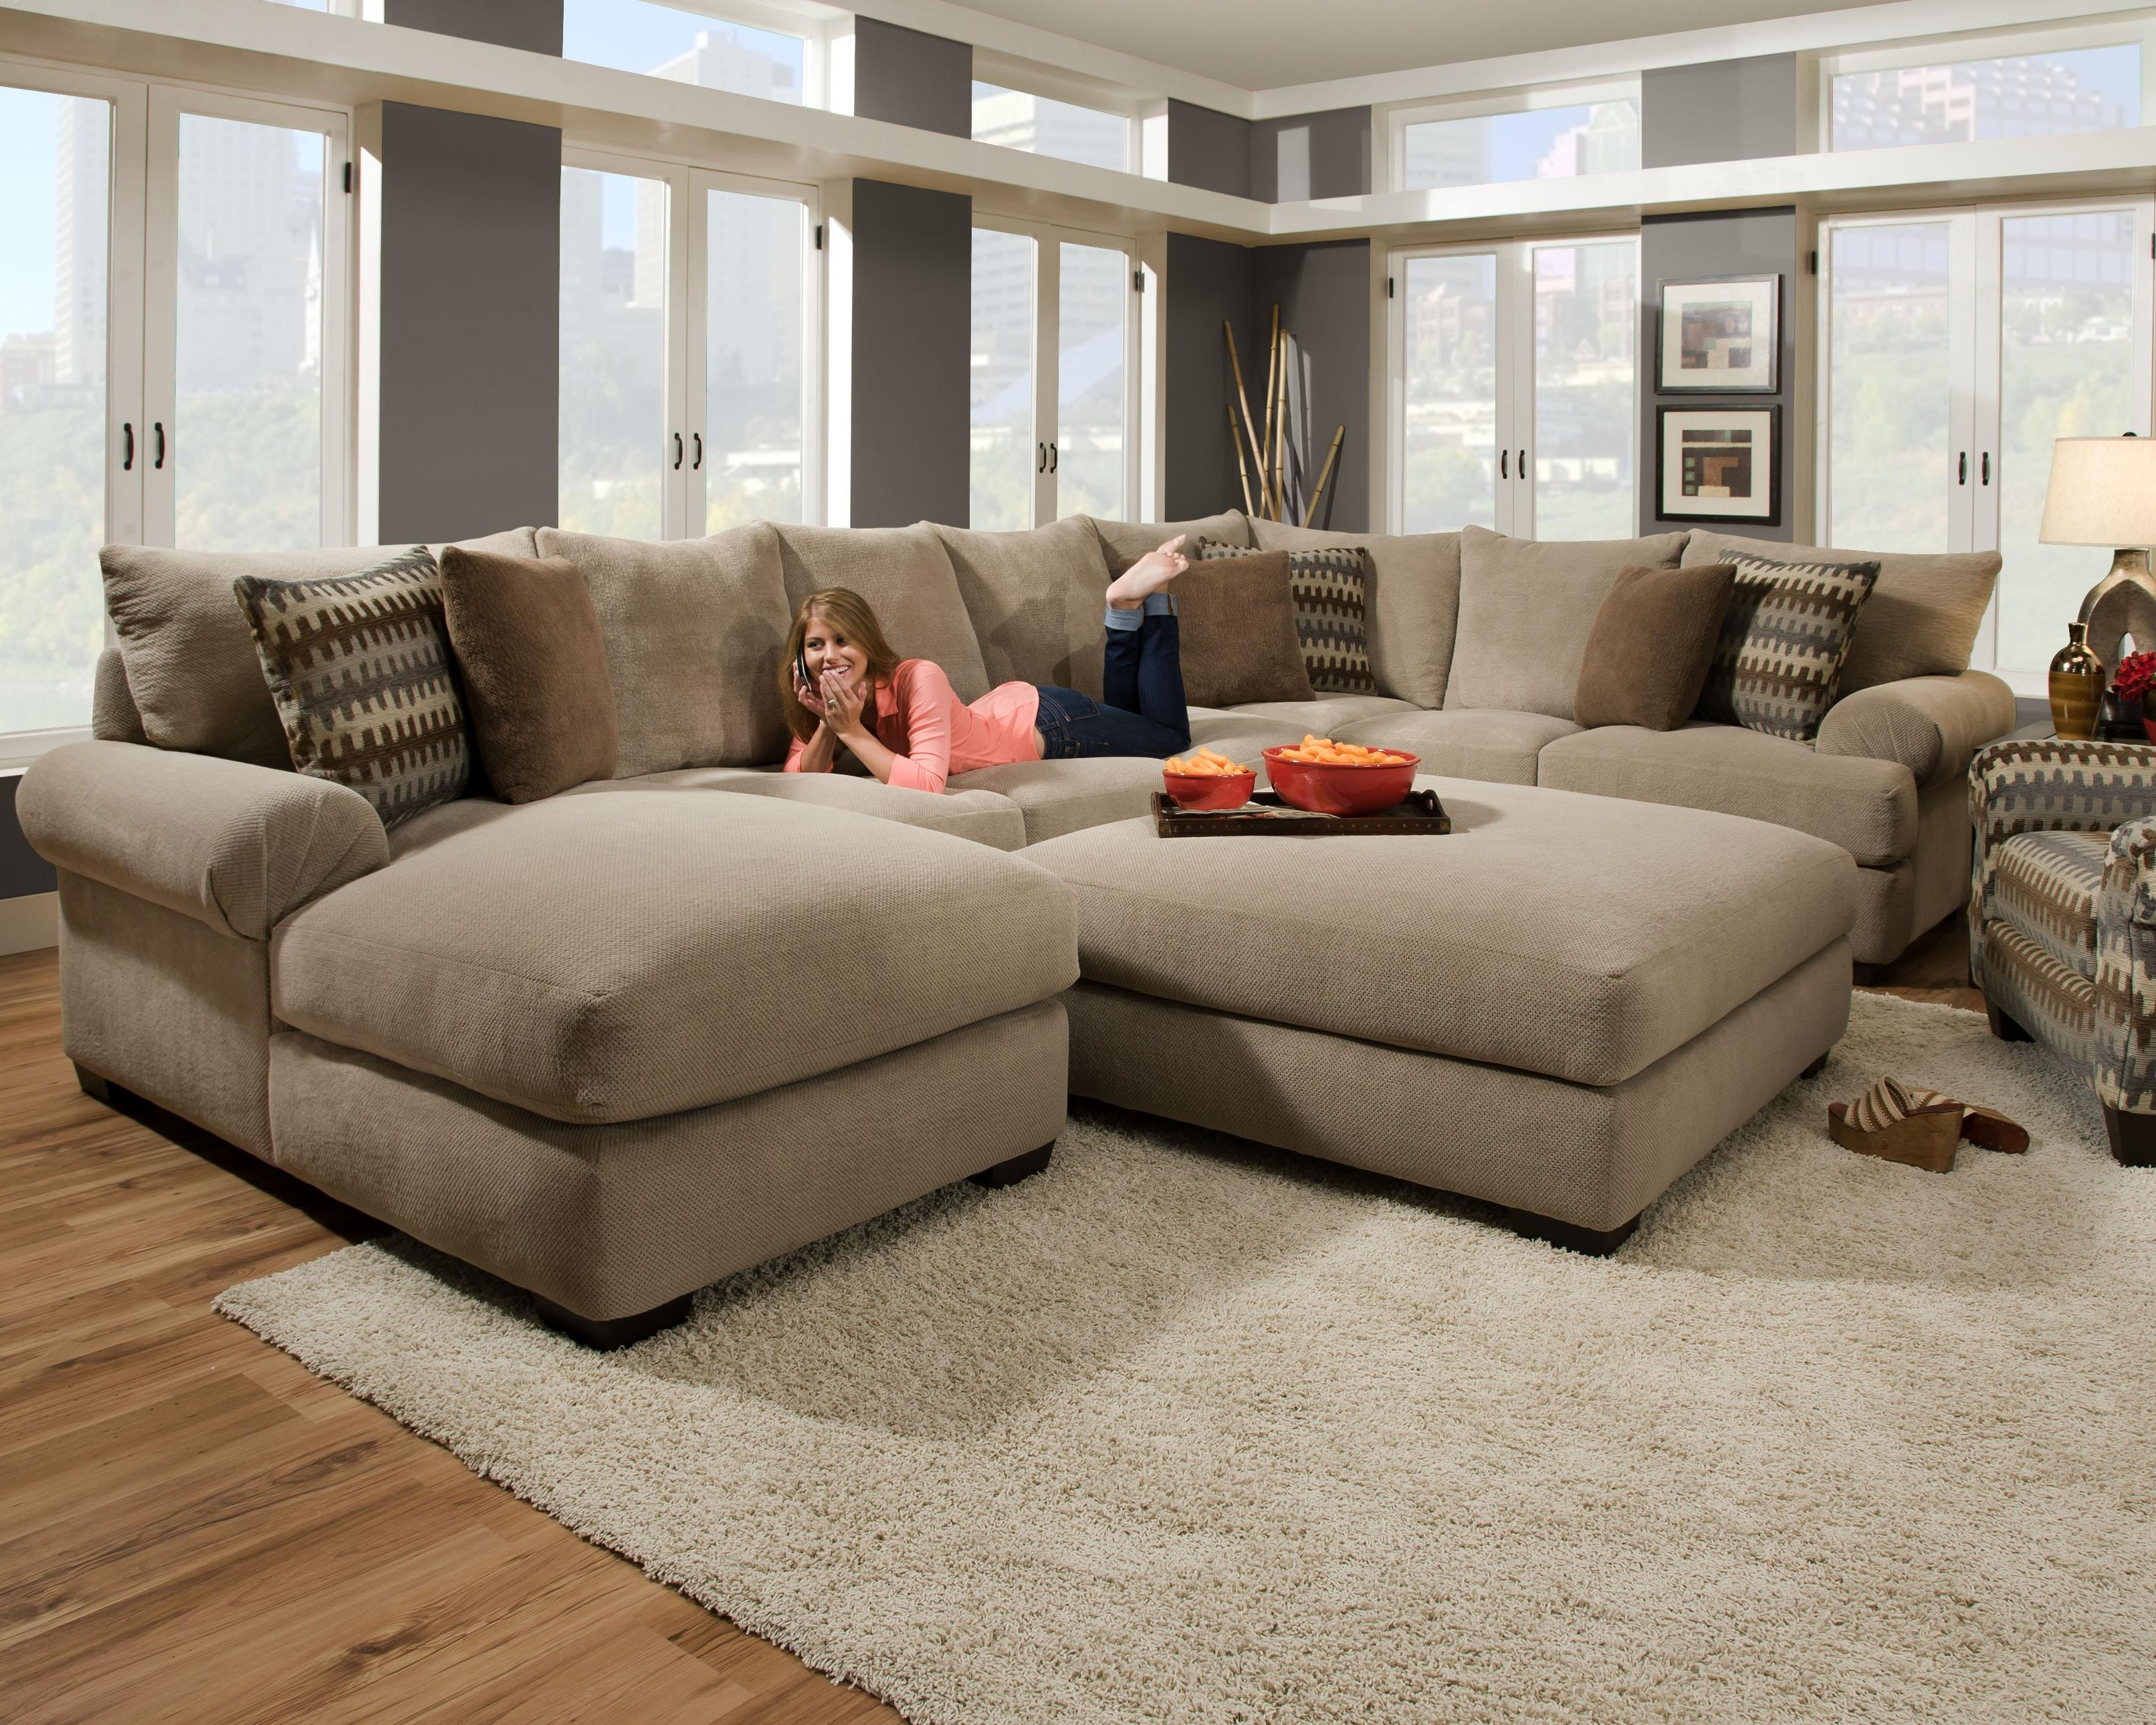 Sectional Sofas With Ottoman With Well Known Beautiful Sectional Sofa With Chaise And Ottoman Pictures (View 14 of 15)